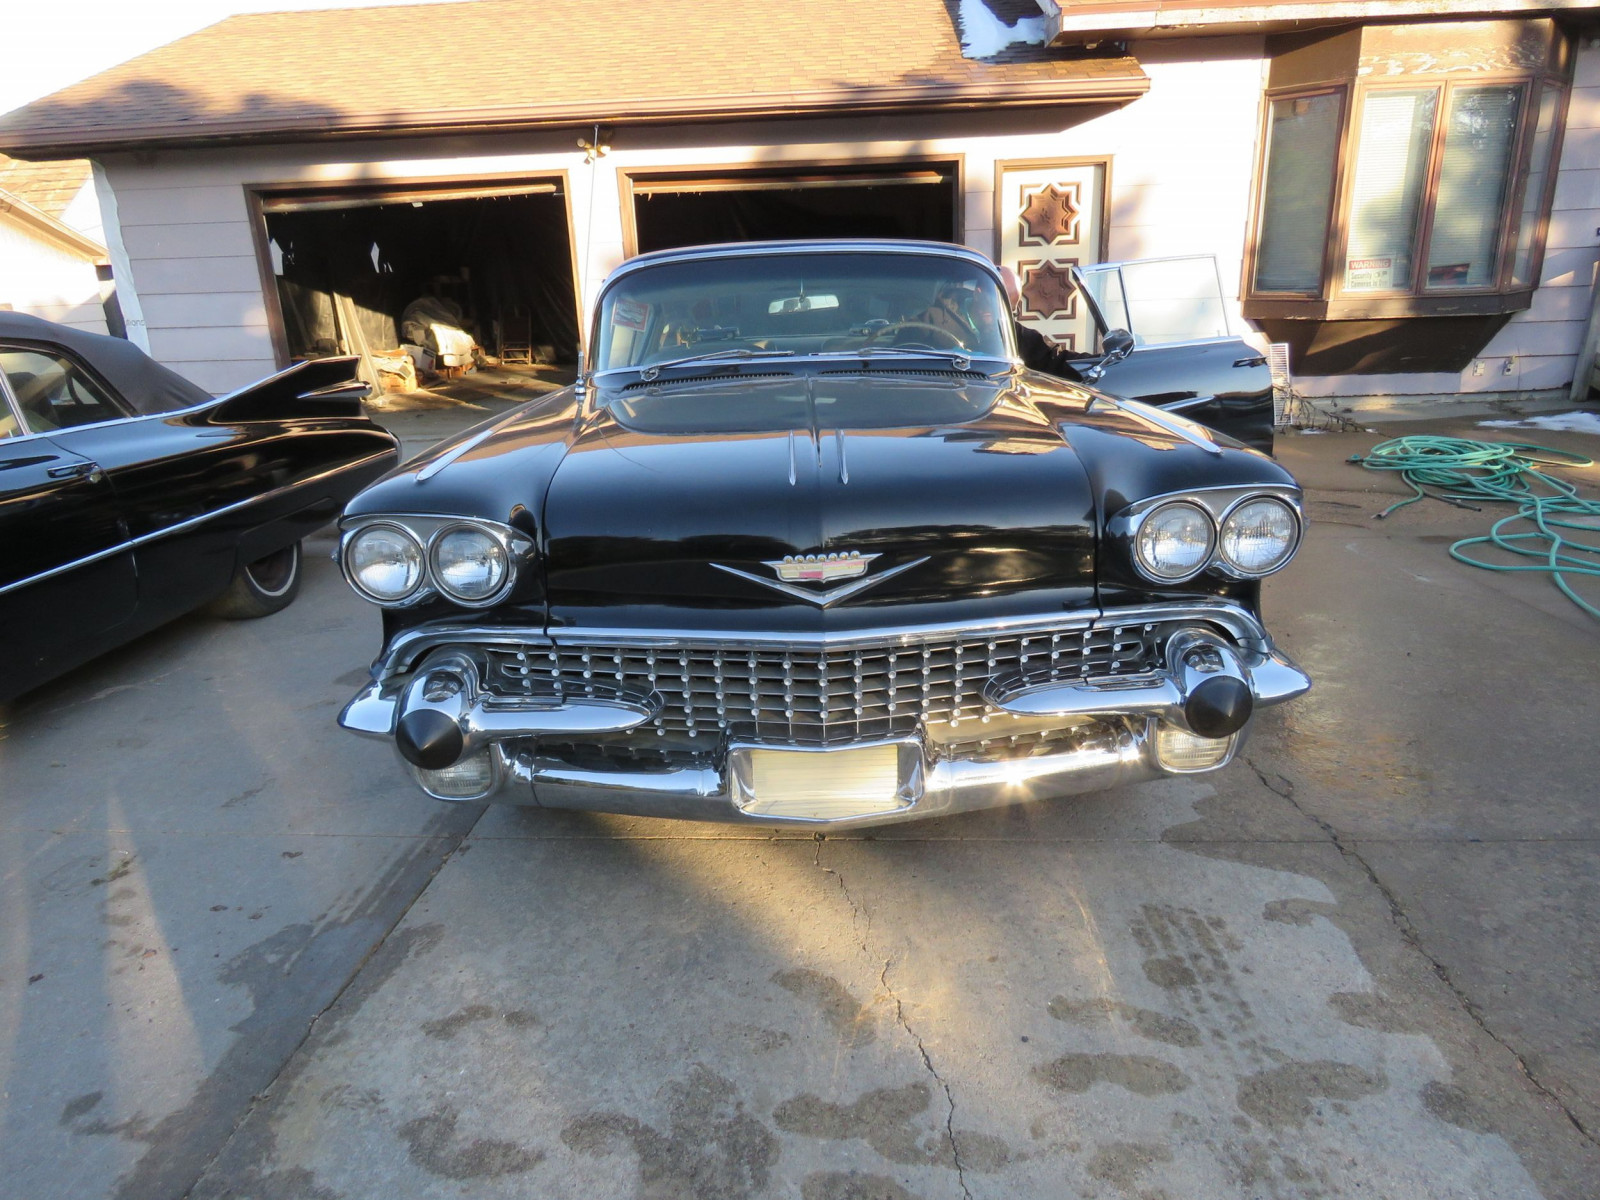 1958 Cadillac Coupe DeVille - Image 19